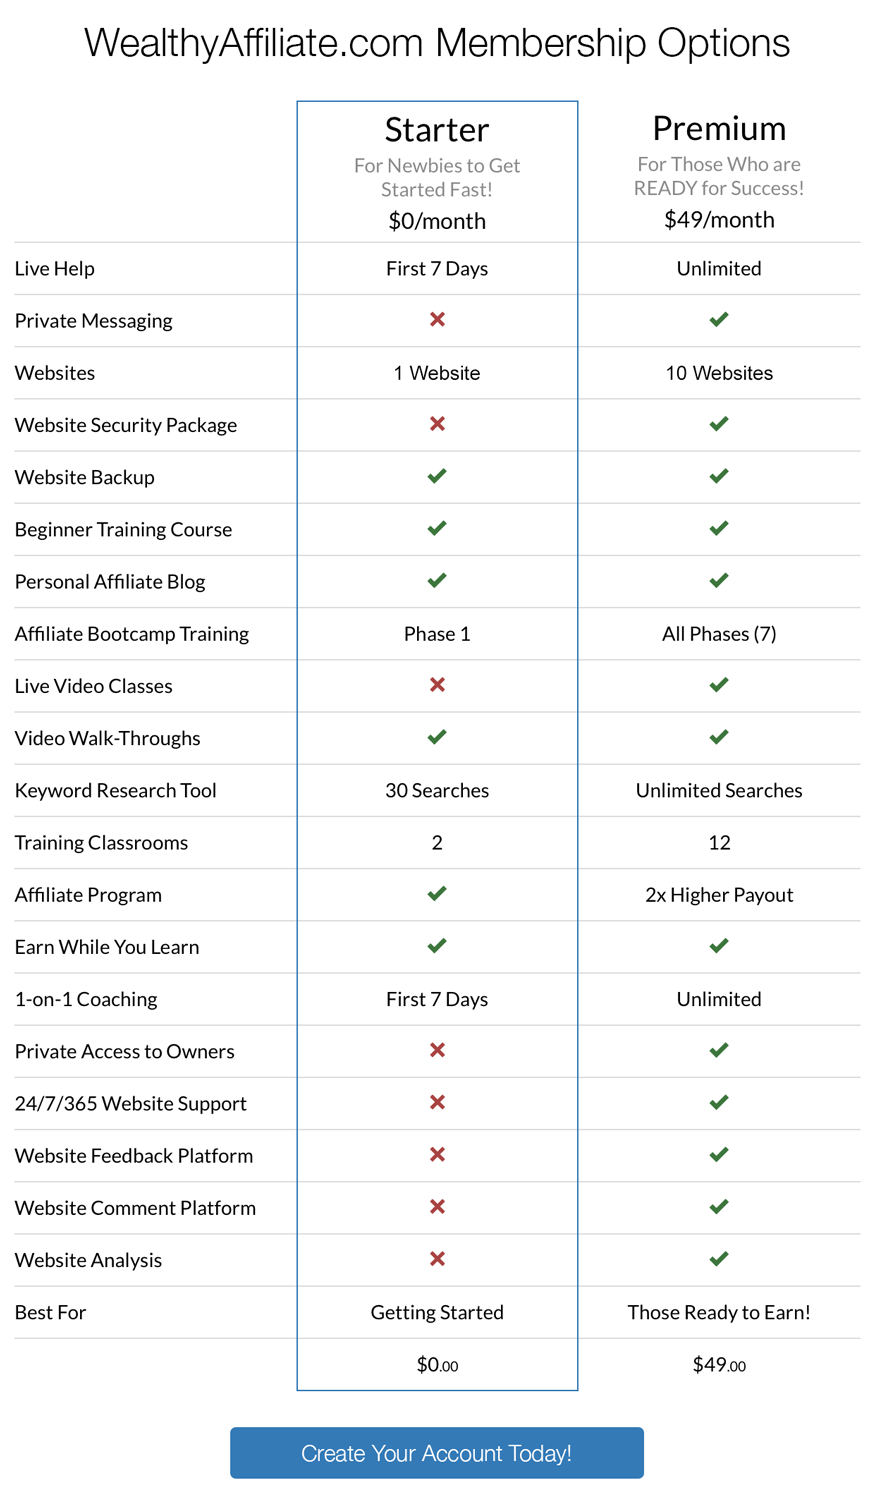 A comparison of the memberships in wealthy affiliate